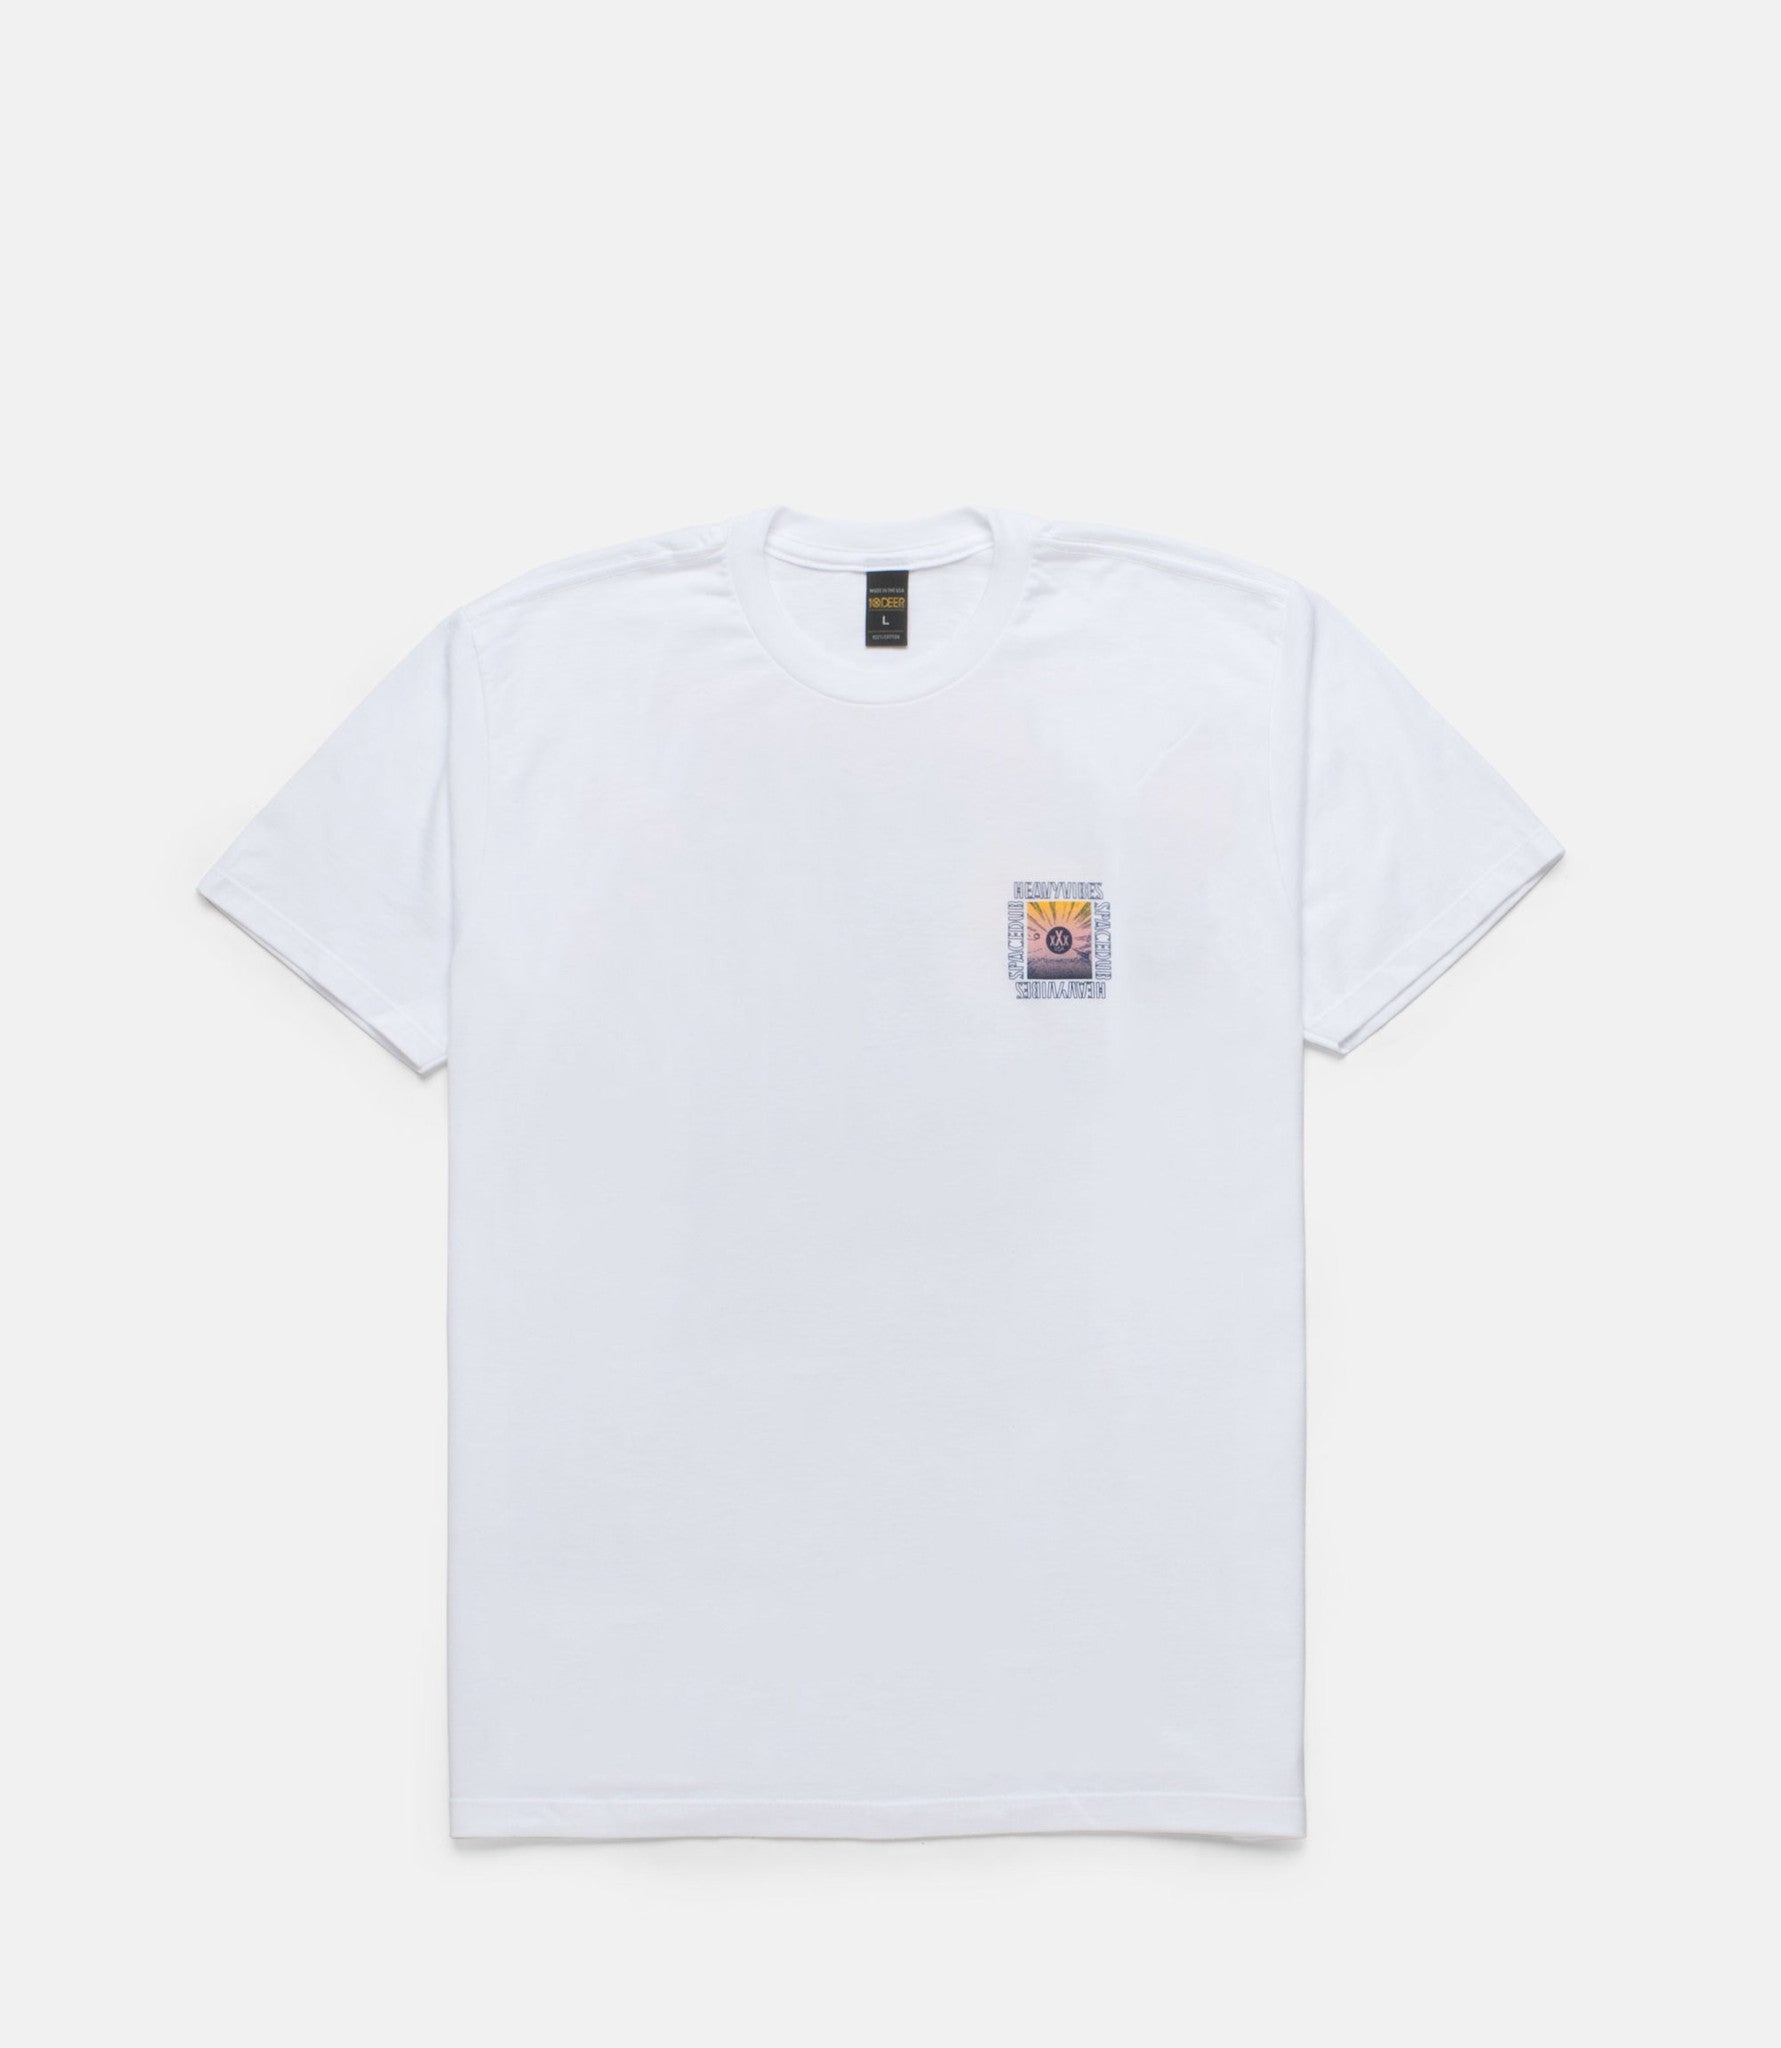 10Deep - Space Vibes Men's Tee, White - The Giant Peach - 2